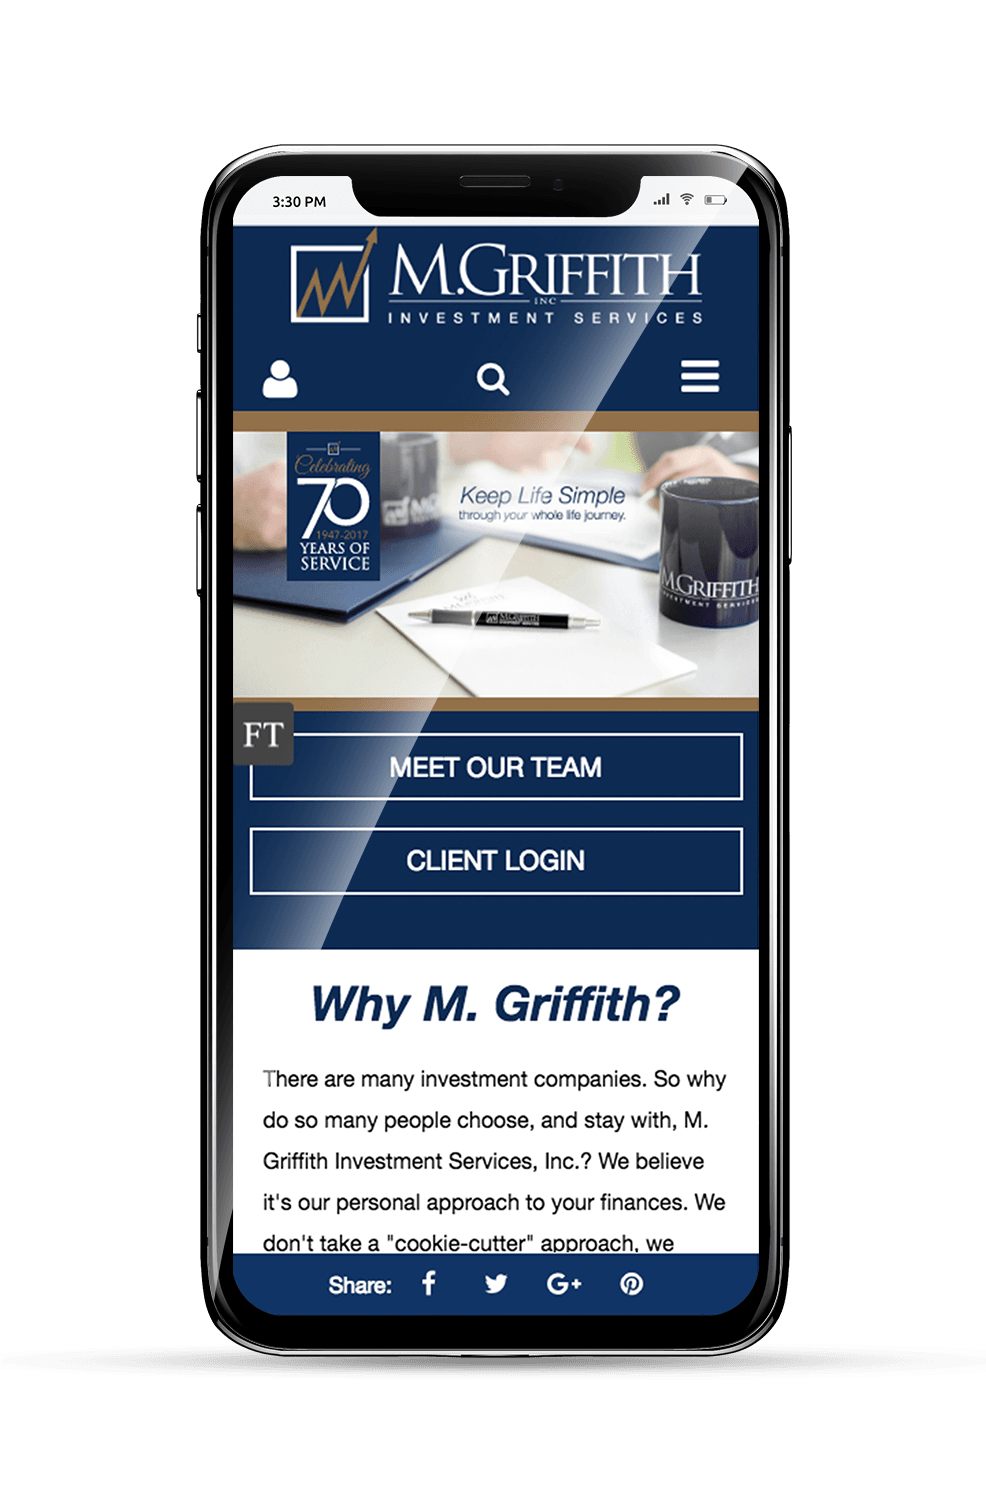 M. Griffith Mobile Website Homepage on an iPhone